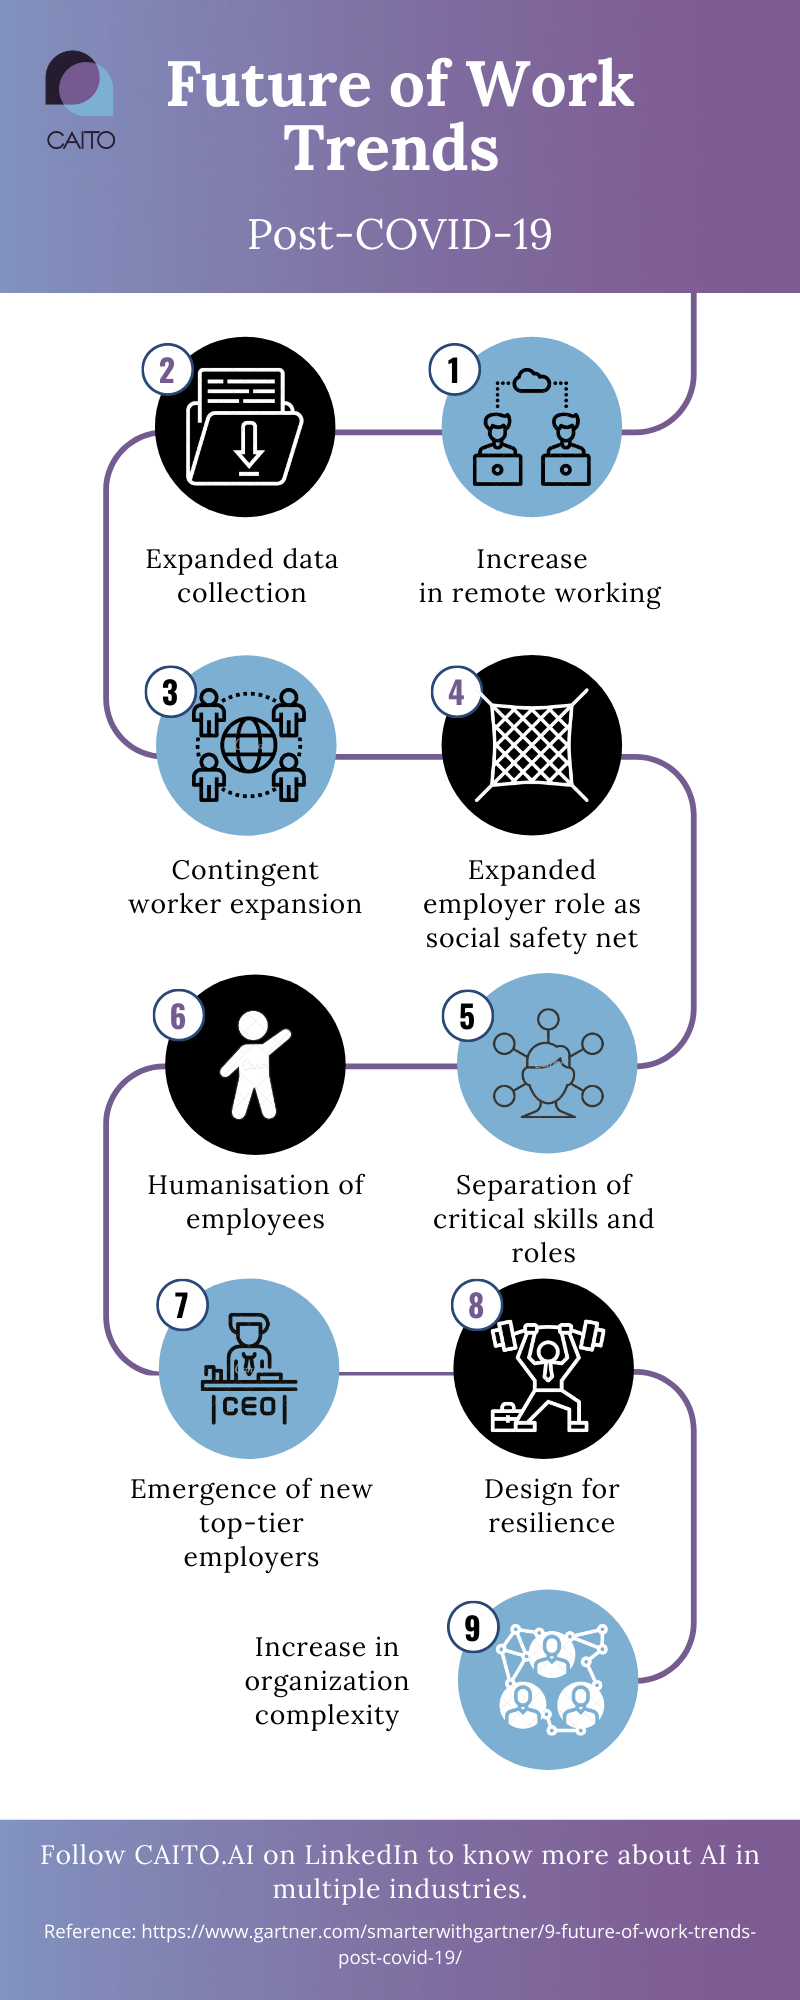 increase in remote working, data collection, worker expansion, social safety net, critical skills and roles..